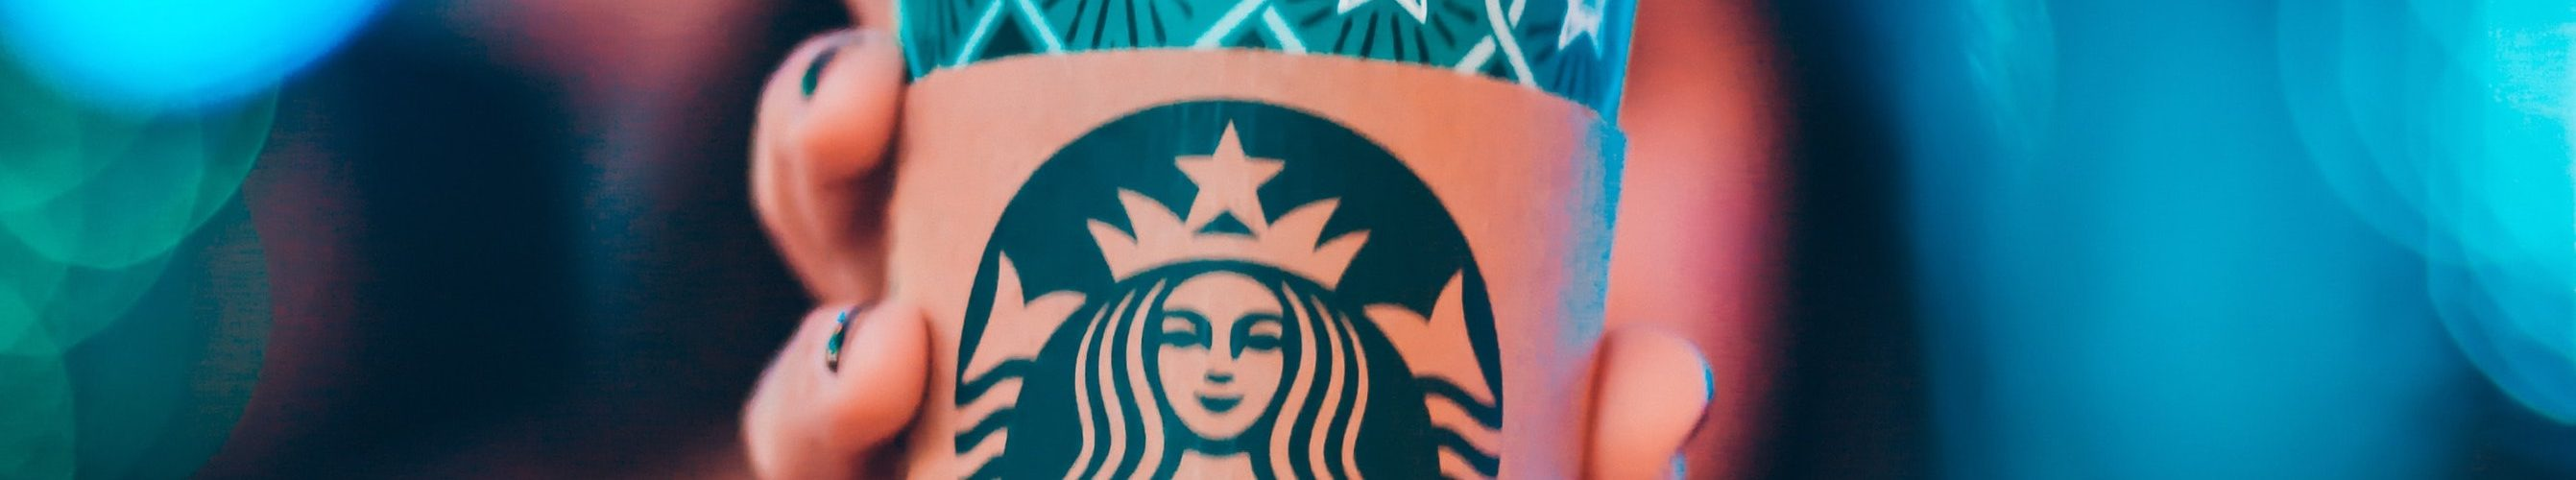 marketing-starbucks-beker